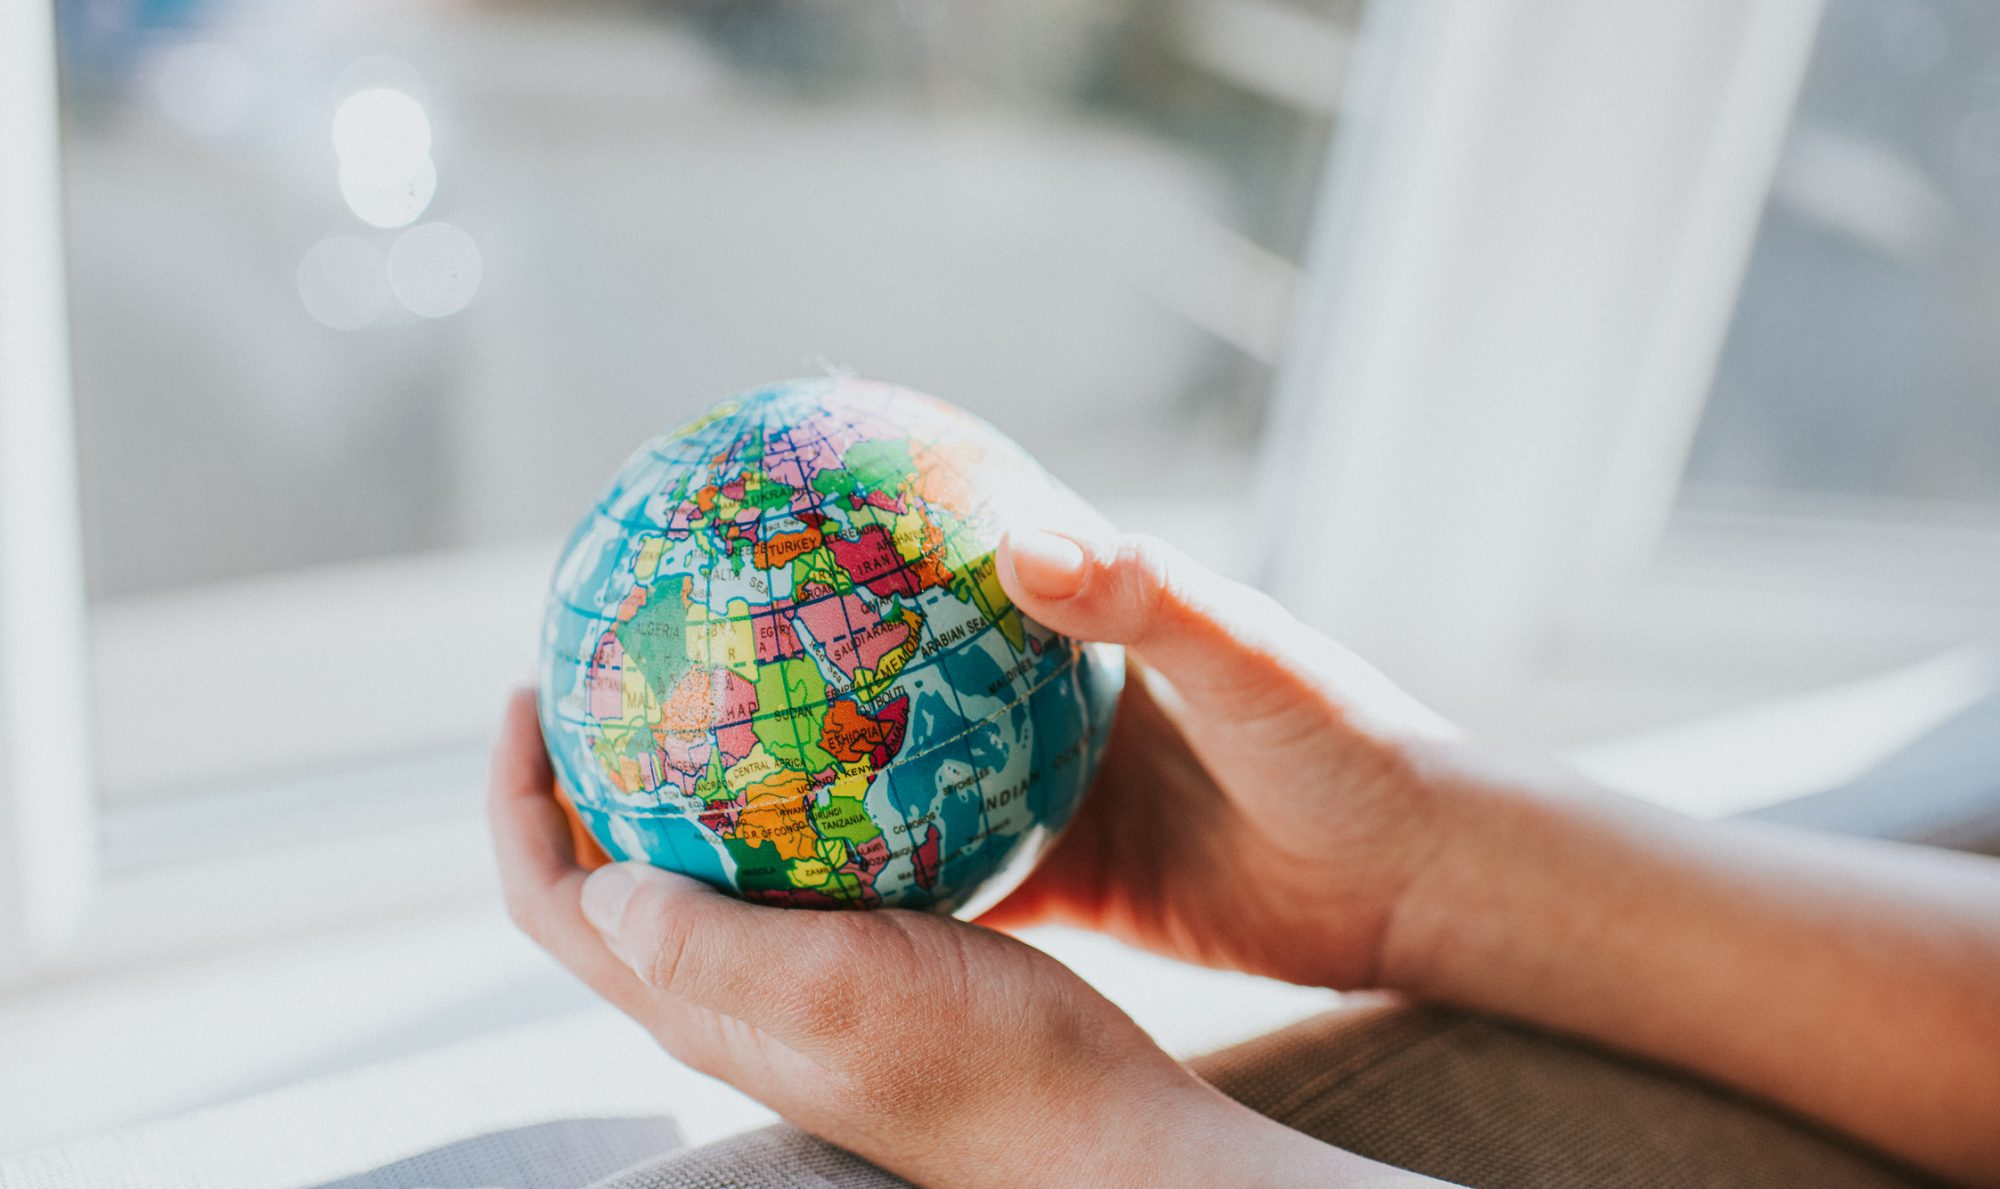 An image of a girl's hands holding a globe.